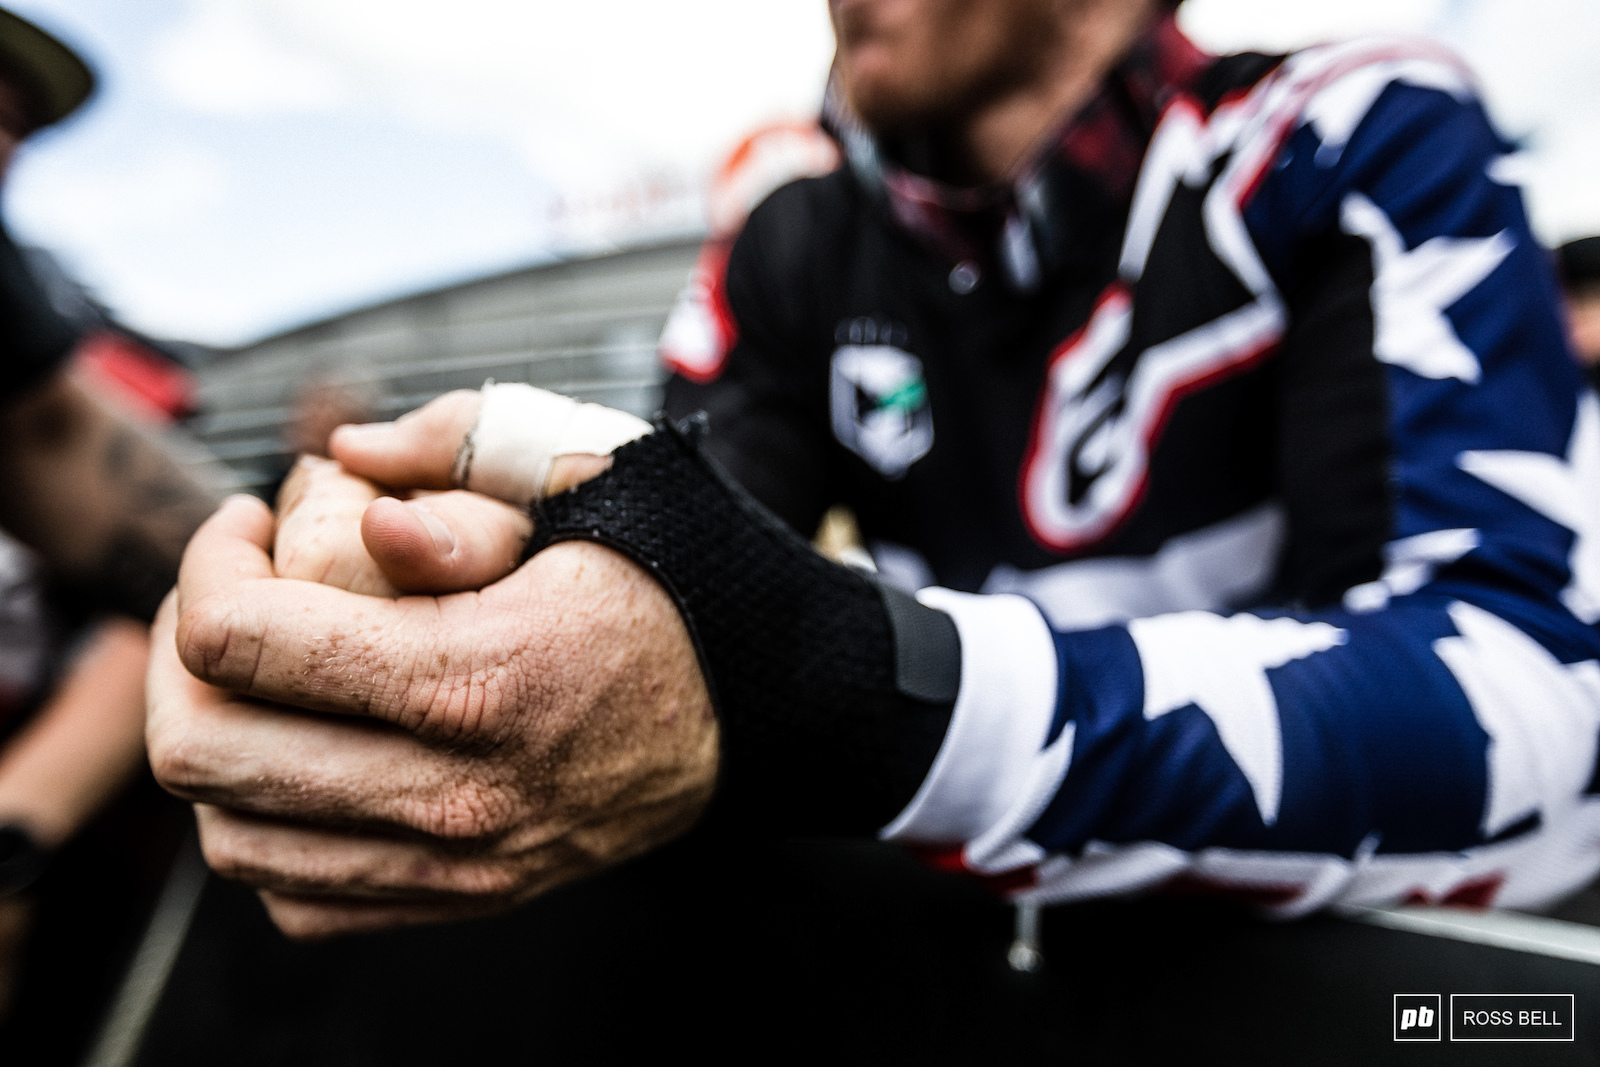 Gwin s strapped and bandaged hands you wouldn t guess they were giving him much discomfort when you watched his race run.